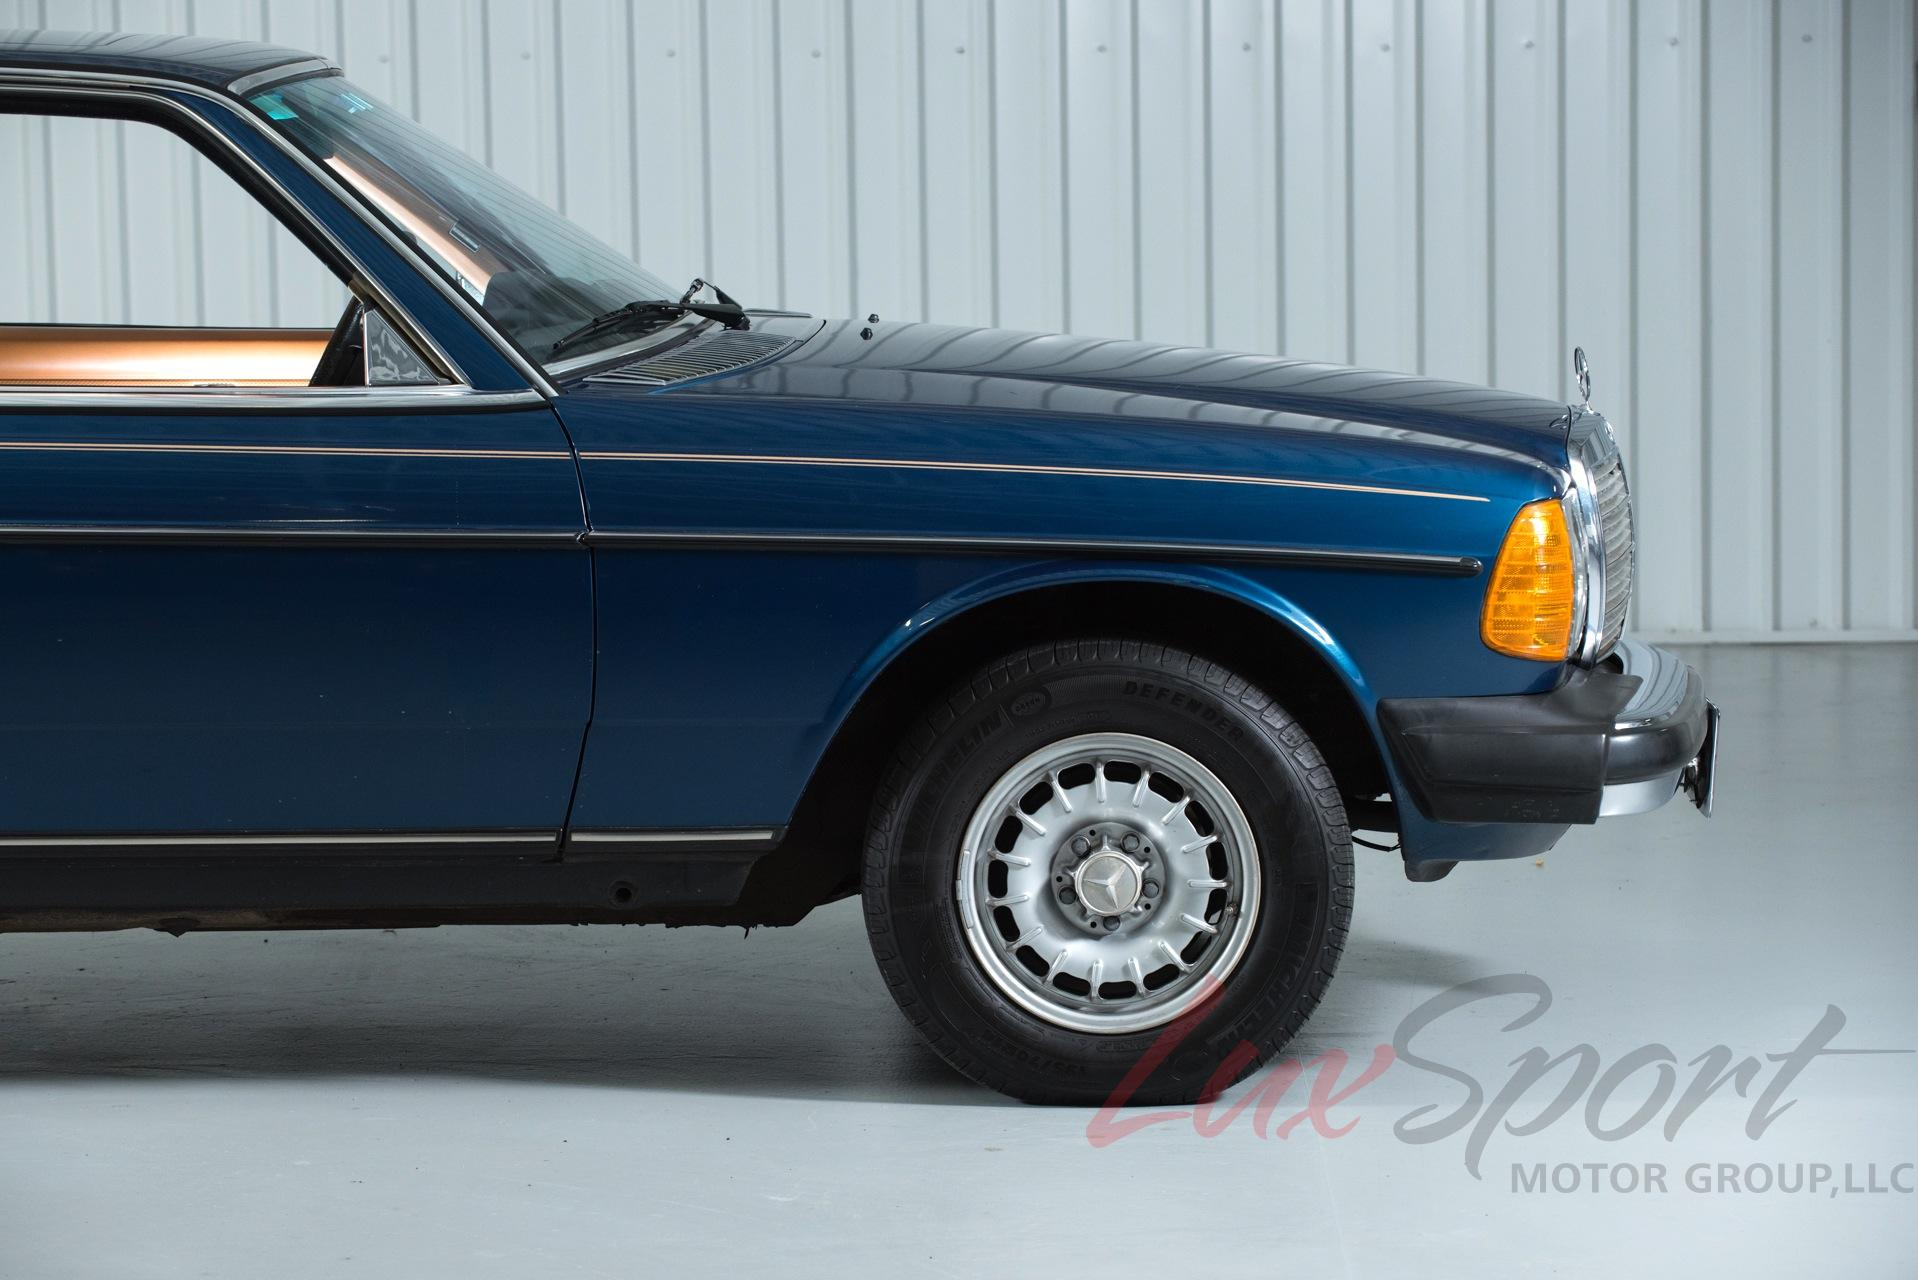 1979 mercedes benz 280ce coupe stock 1979101 for sale for How to buy mercedes benz stock